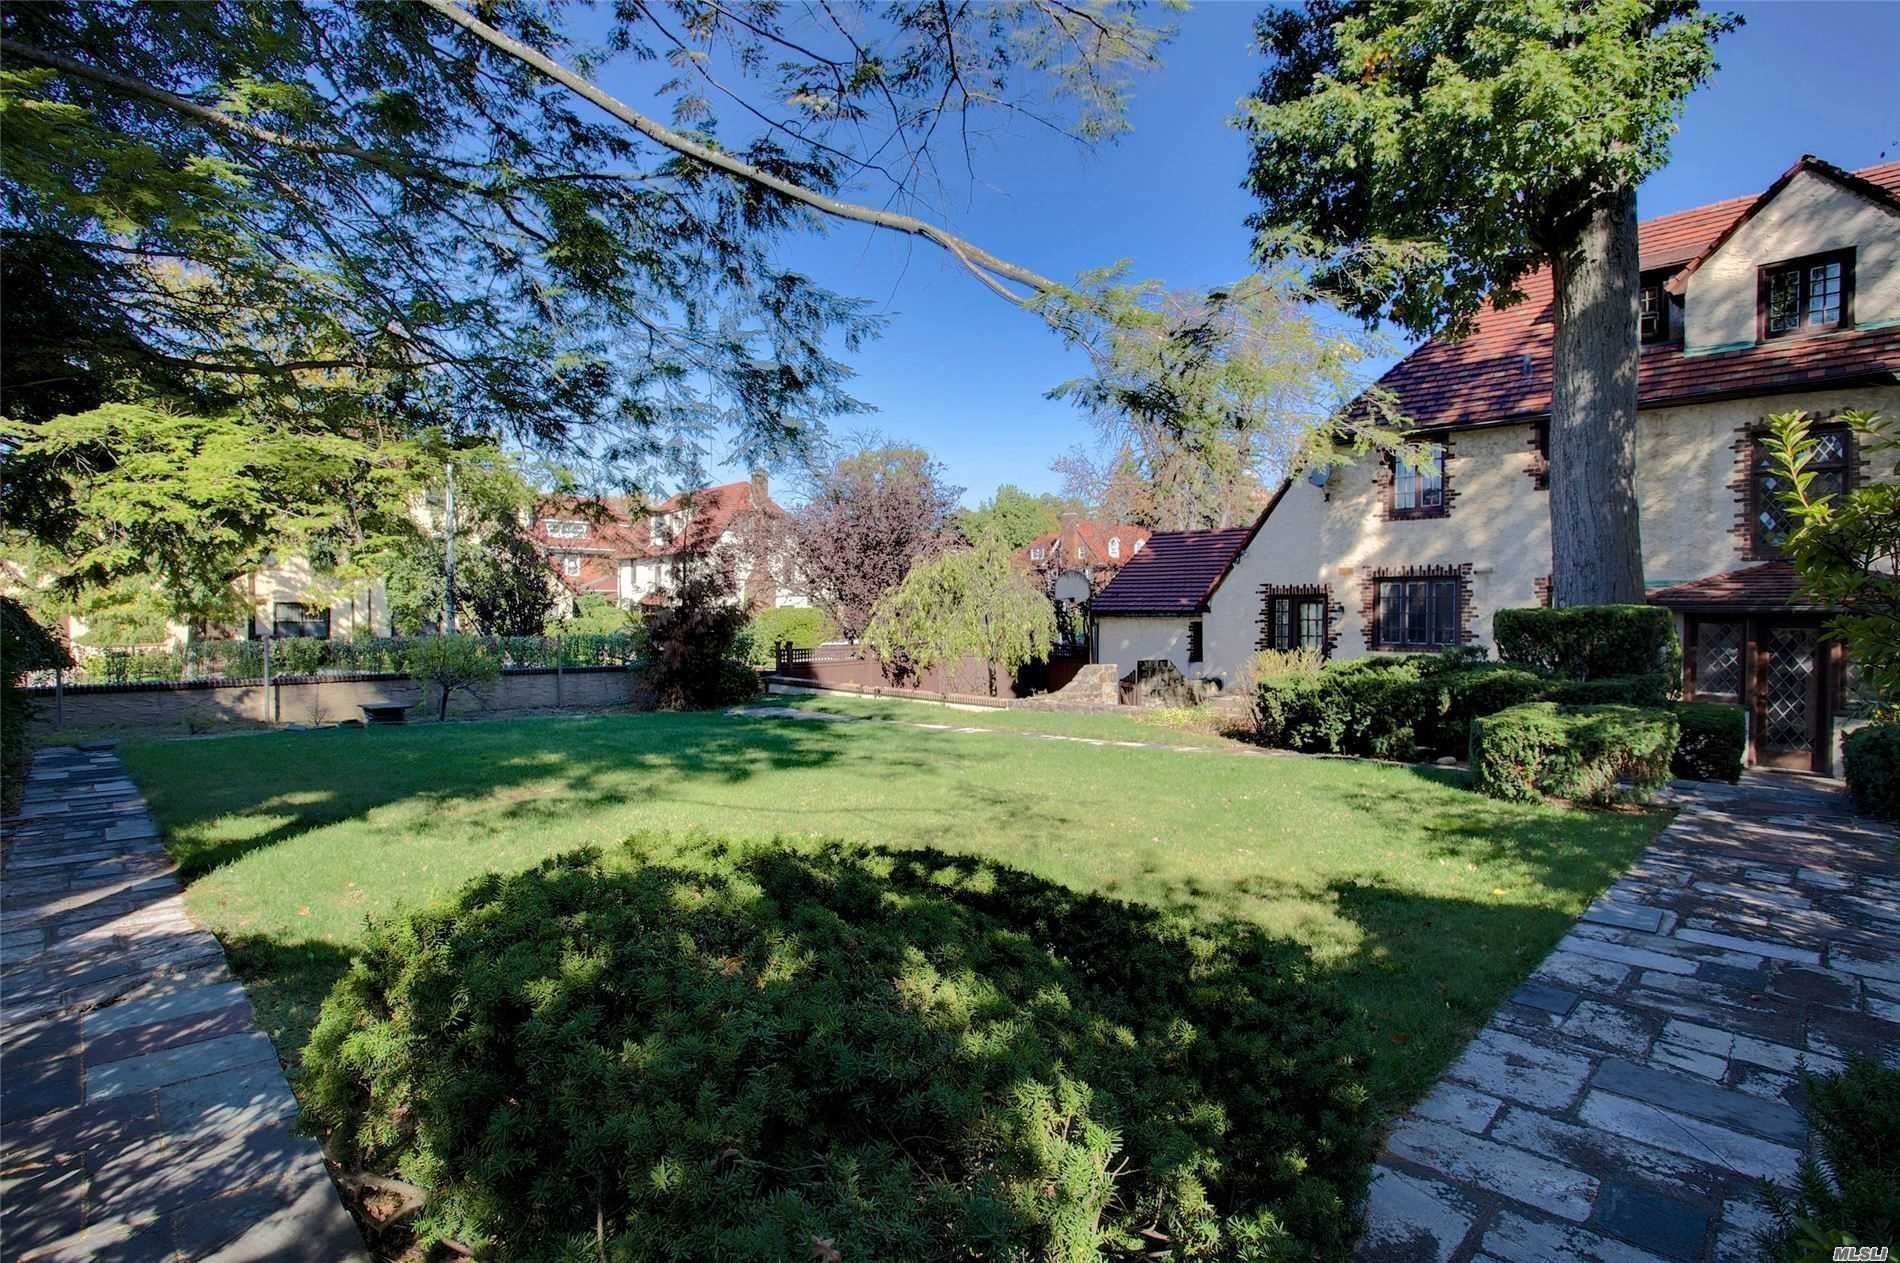 55-B EXETER ST, FOREST HILLS, NY 11375